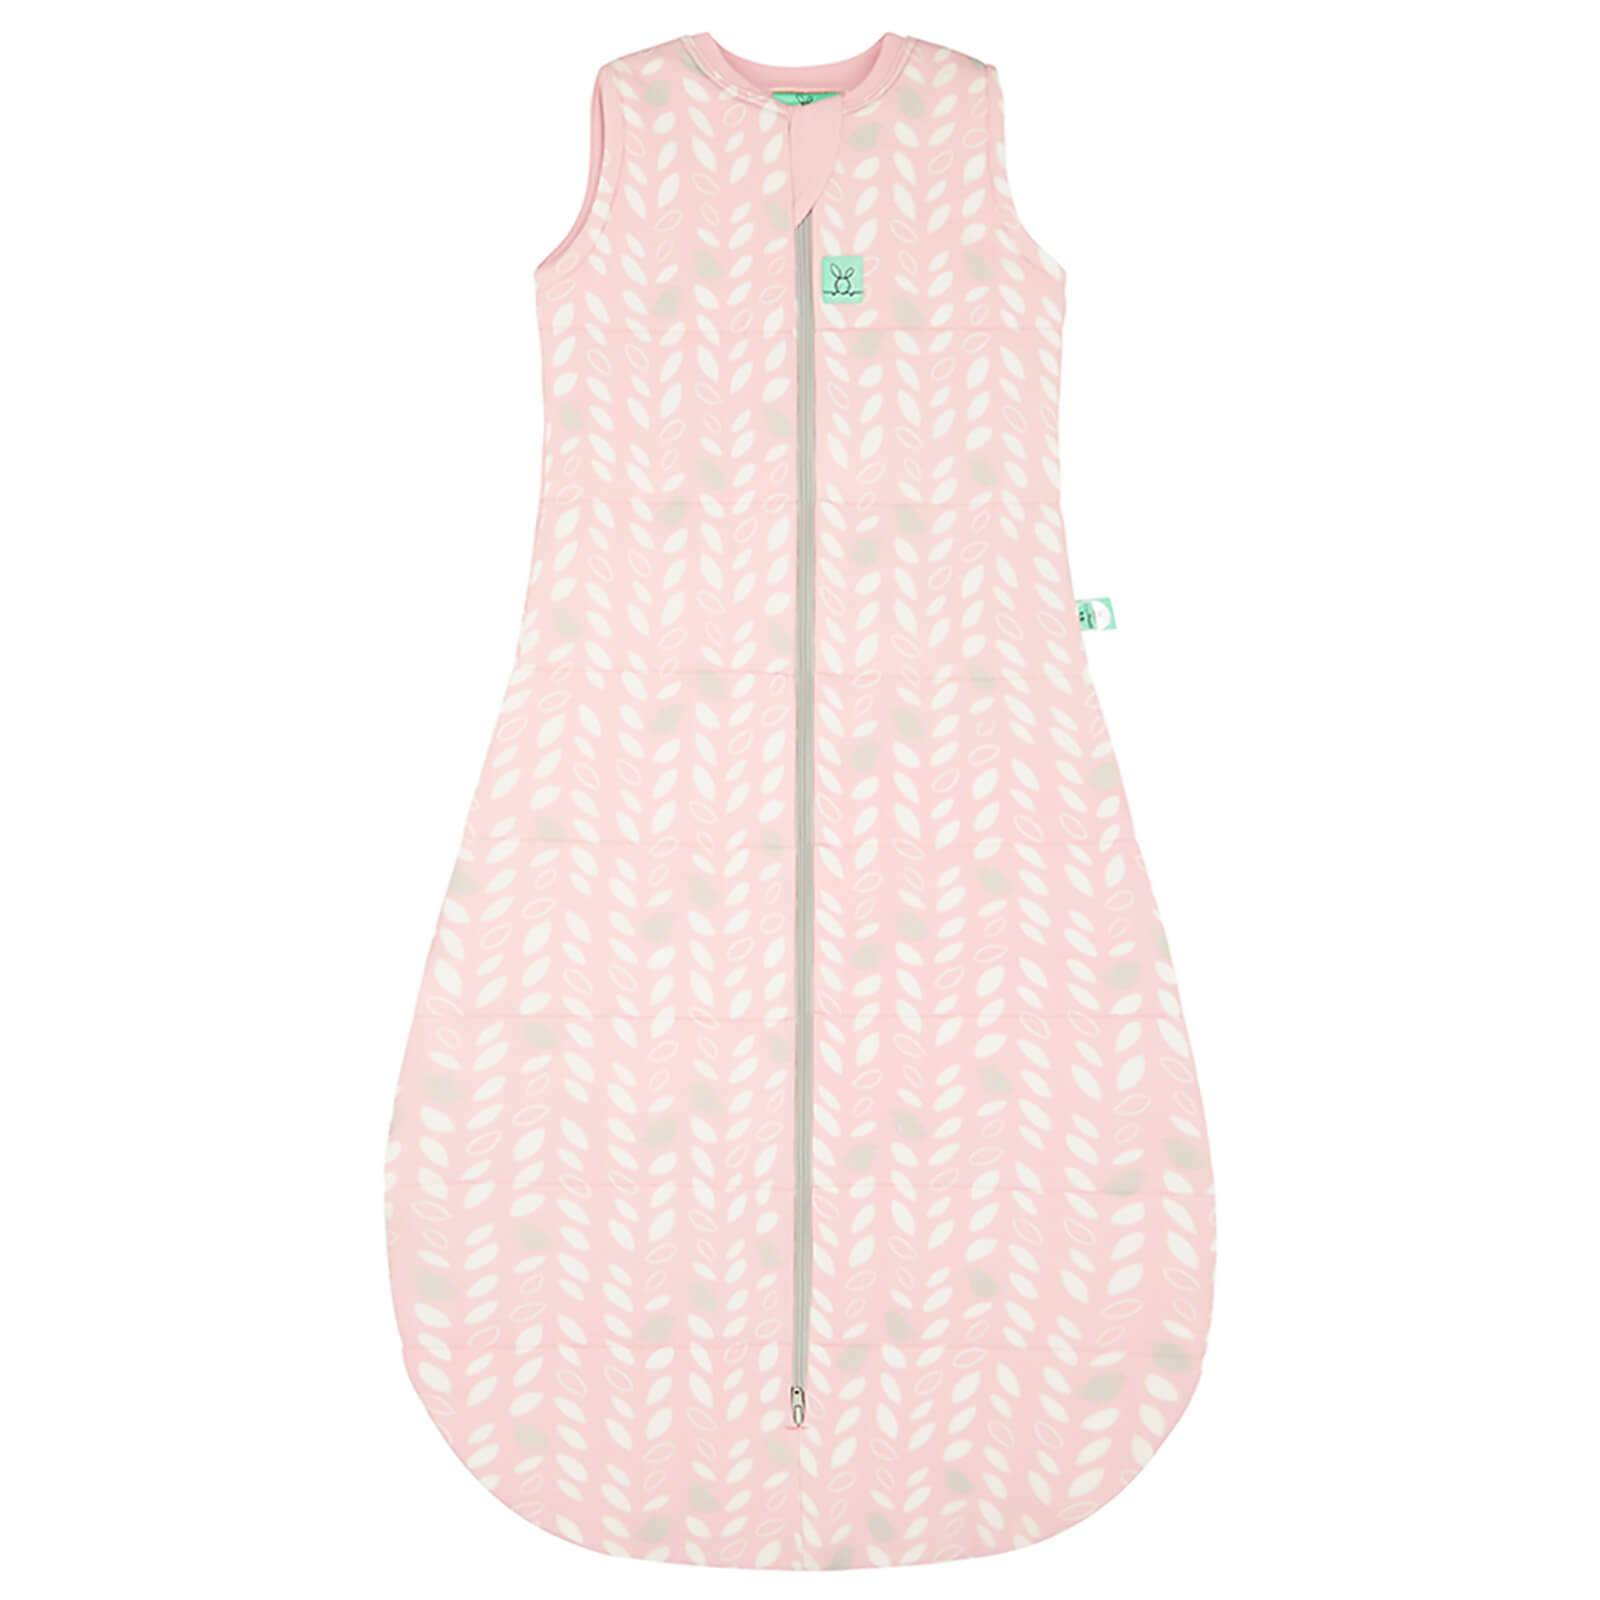 ergoPouch Cocoon Swaddle and Sleep Bag - 2.5 Tog - Spring Leaves - 3-12 Months - Pink